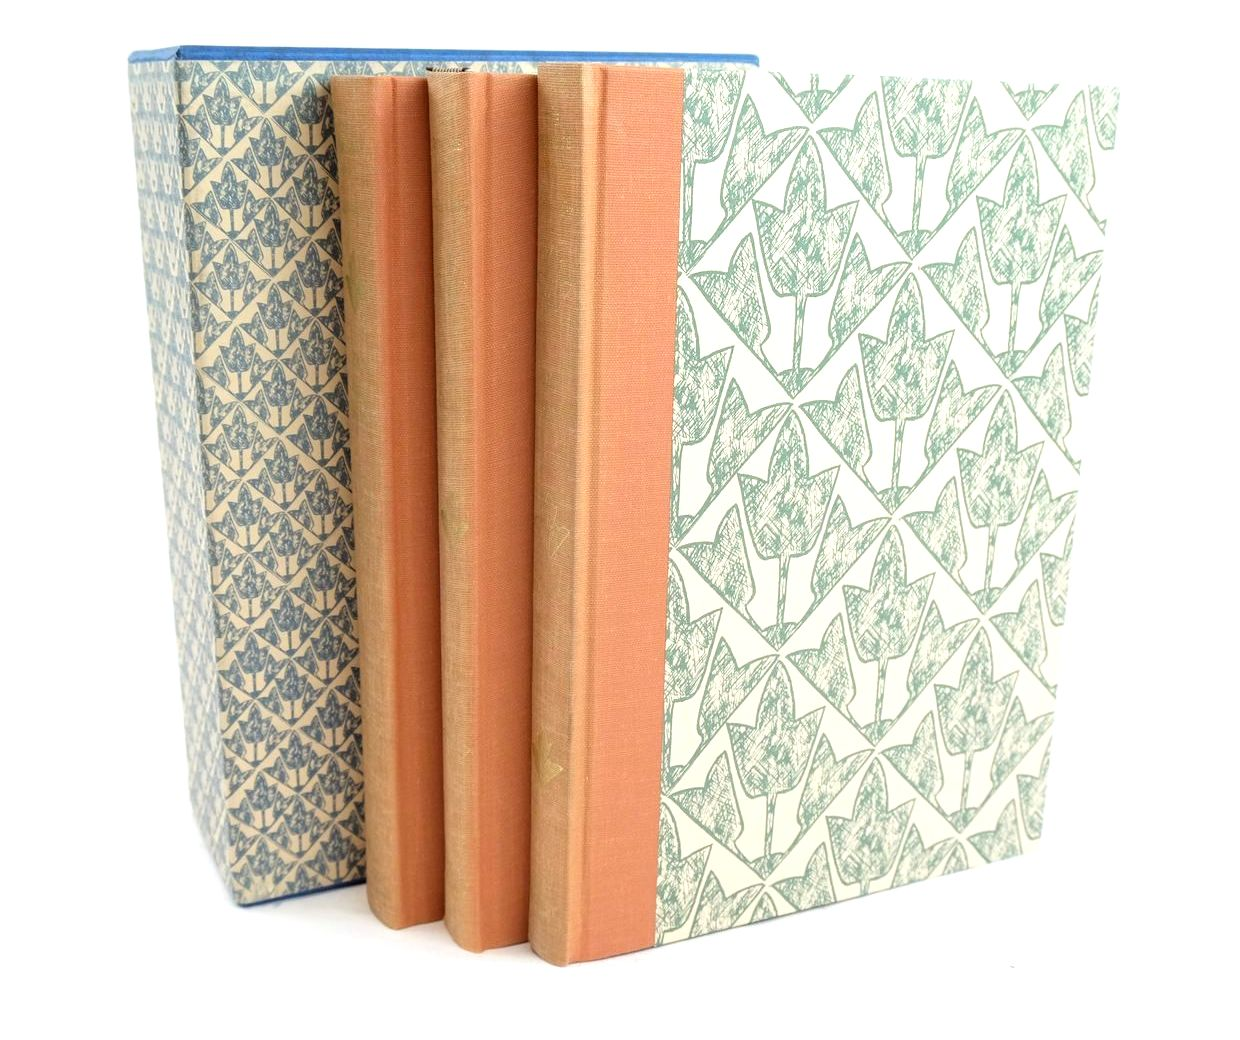 Photo of THE FORSYTE SAGA (3 VOLUMES) written by Galsworthy, John illustrated by Gross, Anthony published by Folio Society (STOCK CODE: 1320000)  for sale by Stella & Rose's Books